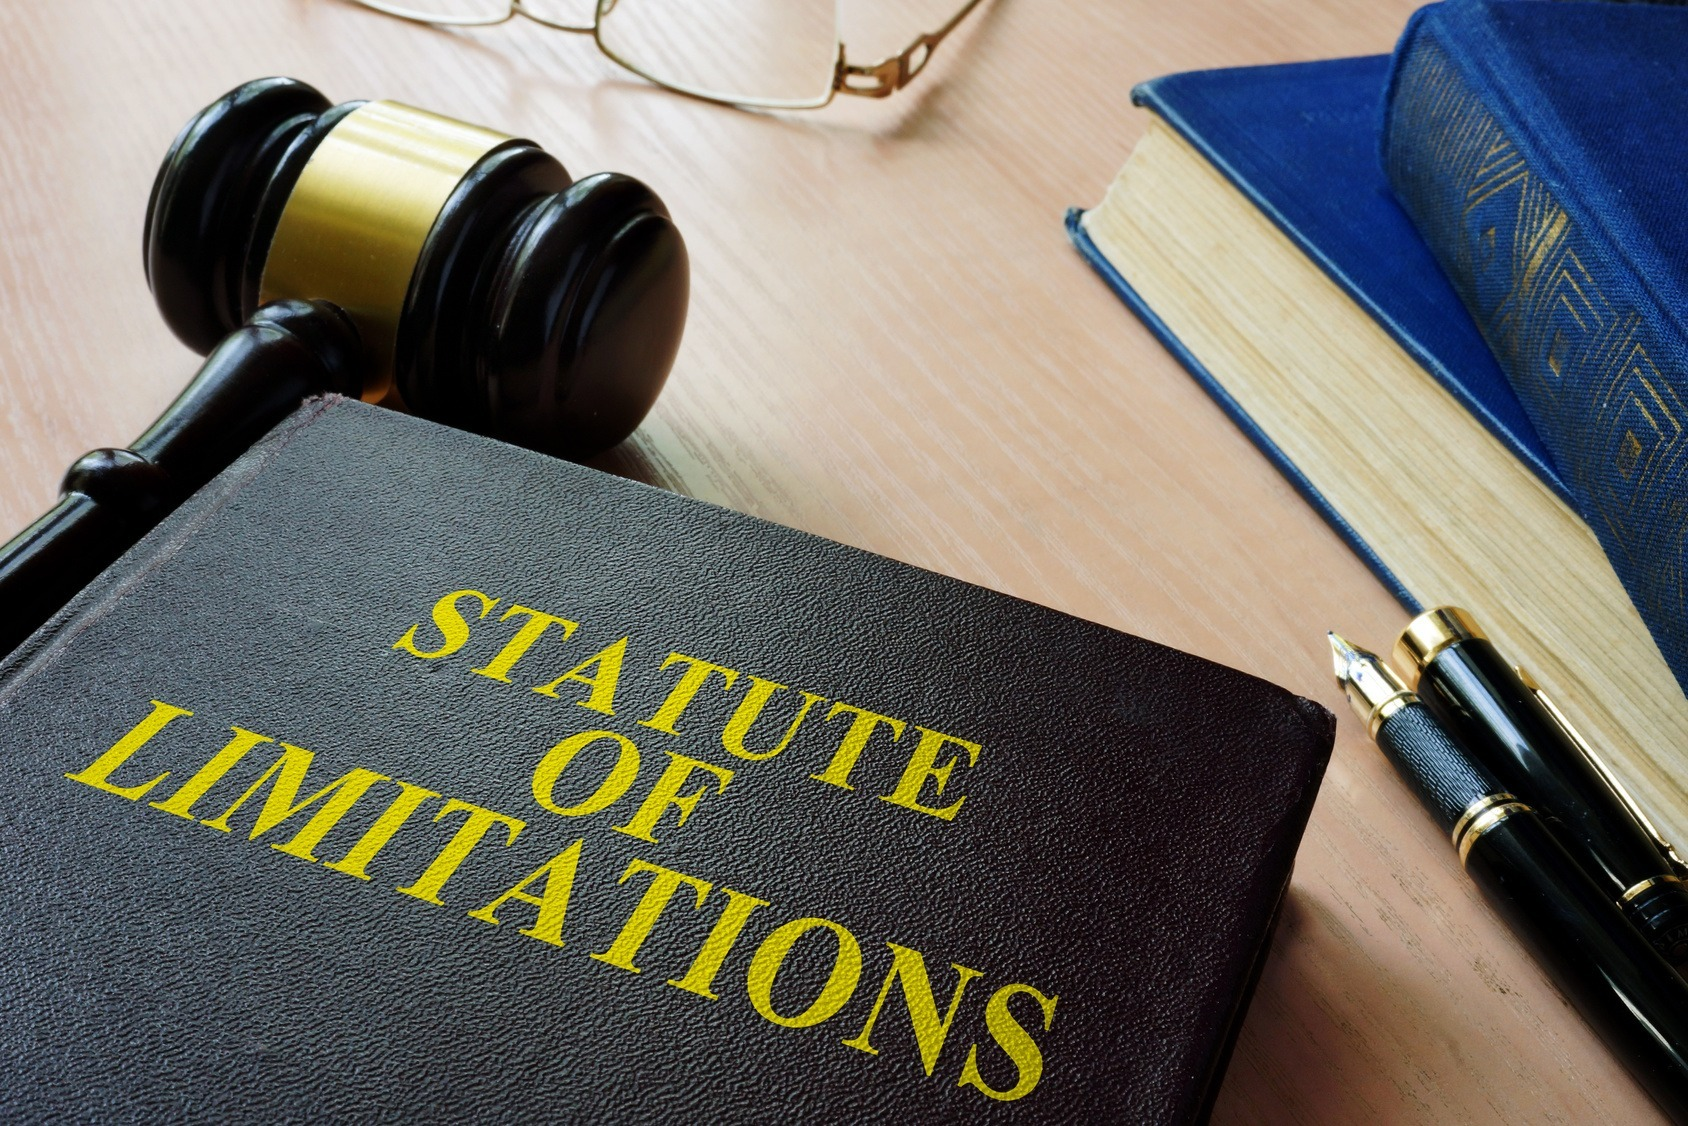 Do Statute of Limitations Apply If Symptoms Were Present Immediately but Got Worse Recently?